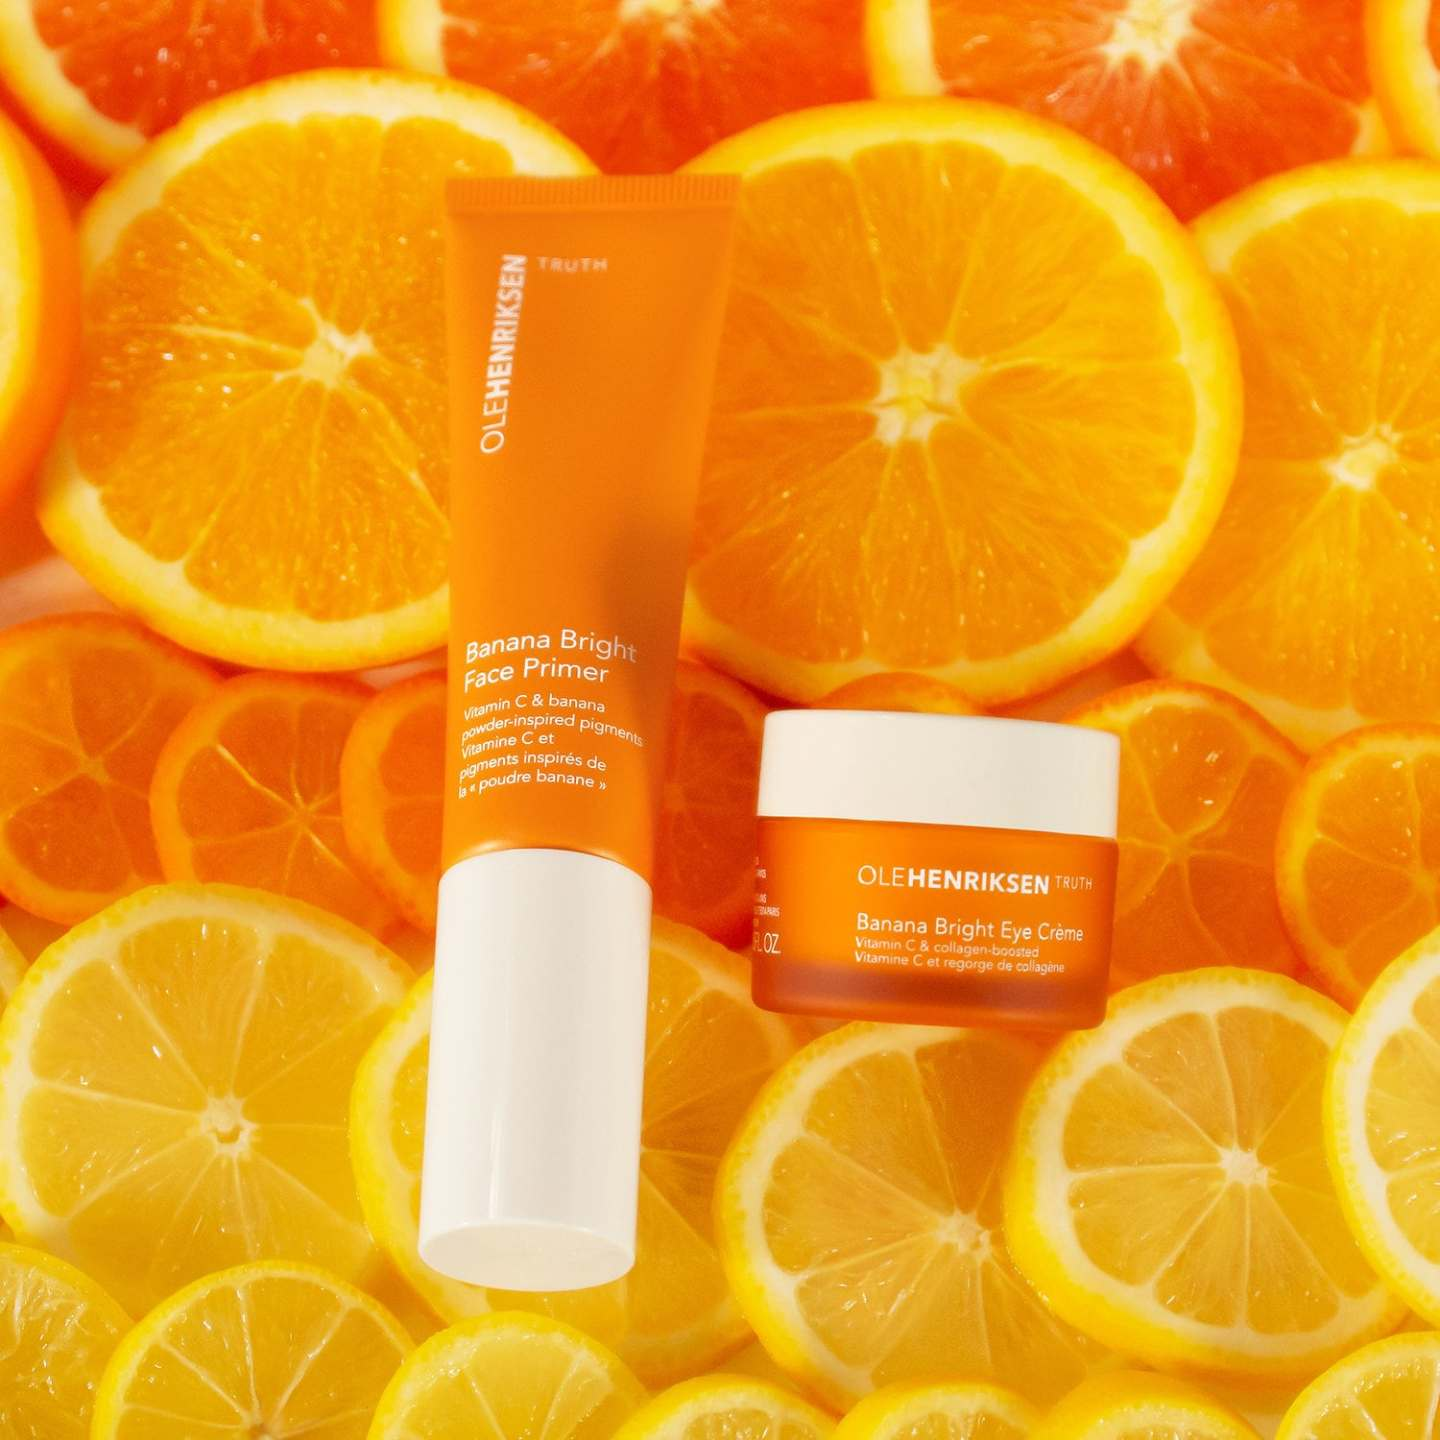 Ole Henriksen Launches Banana Bright Face Primer